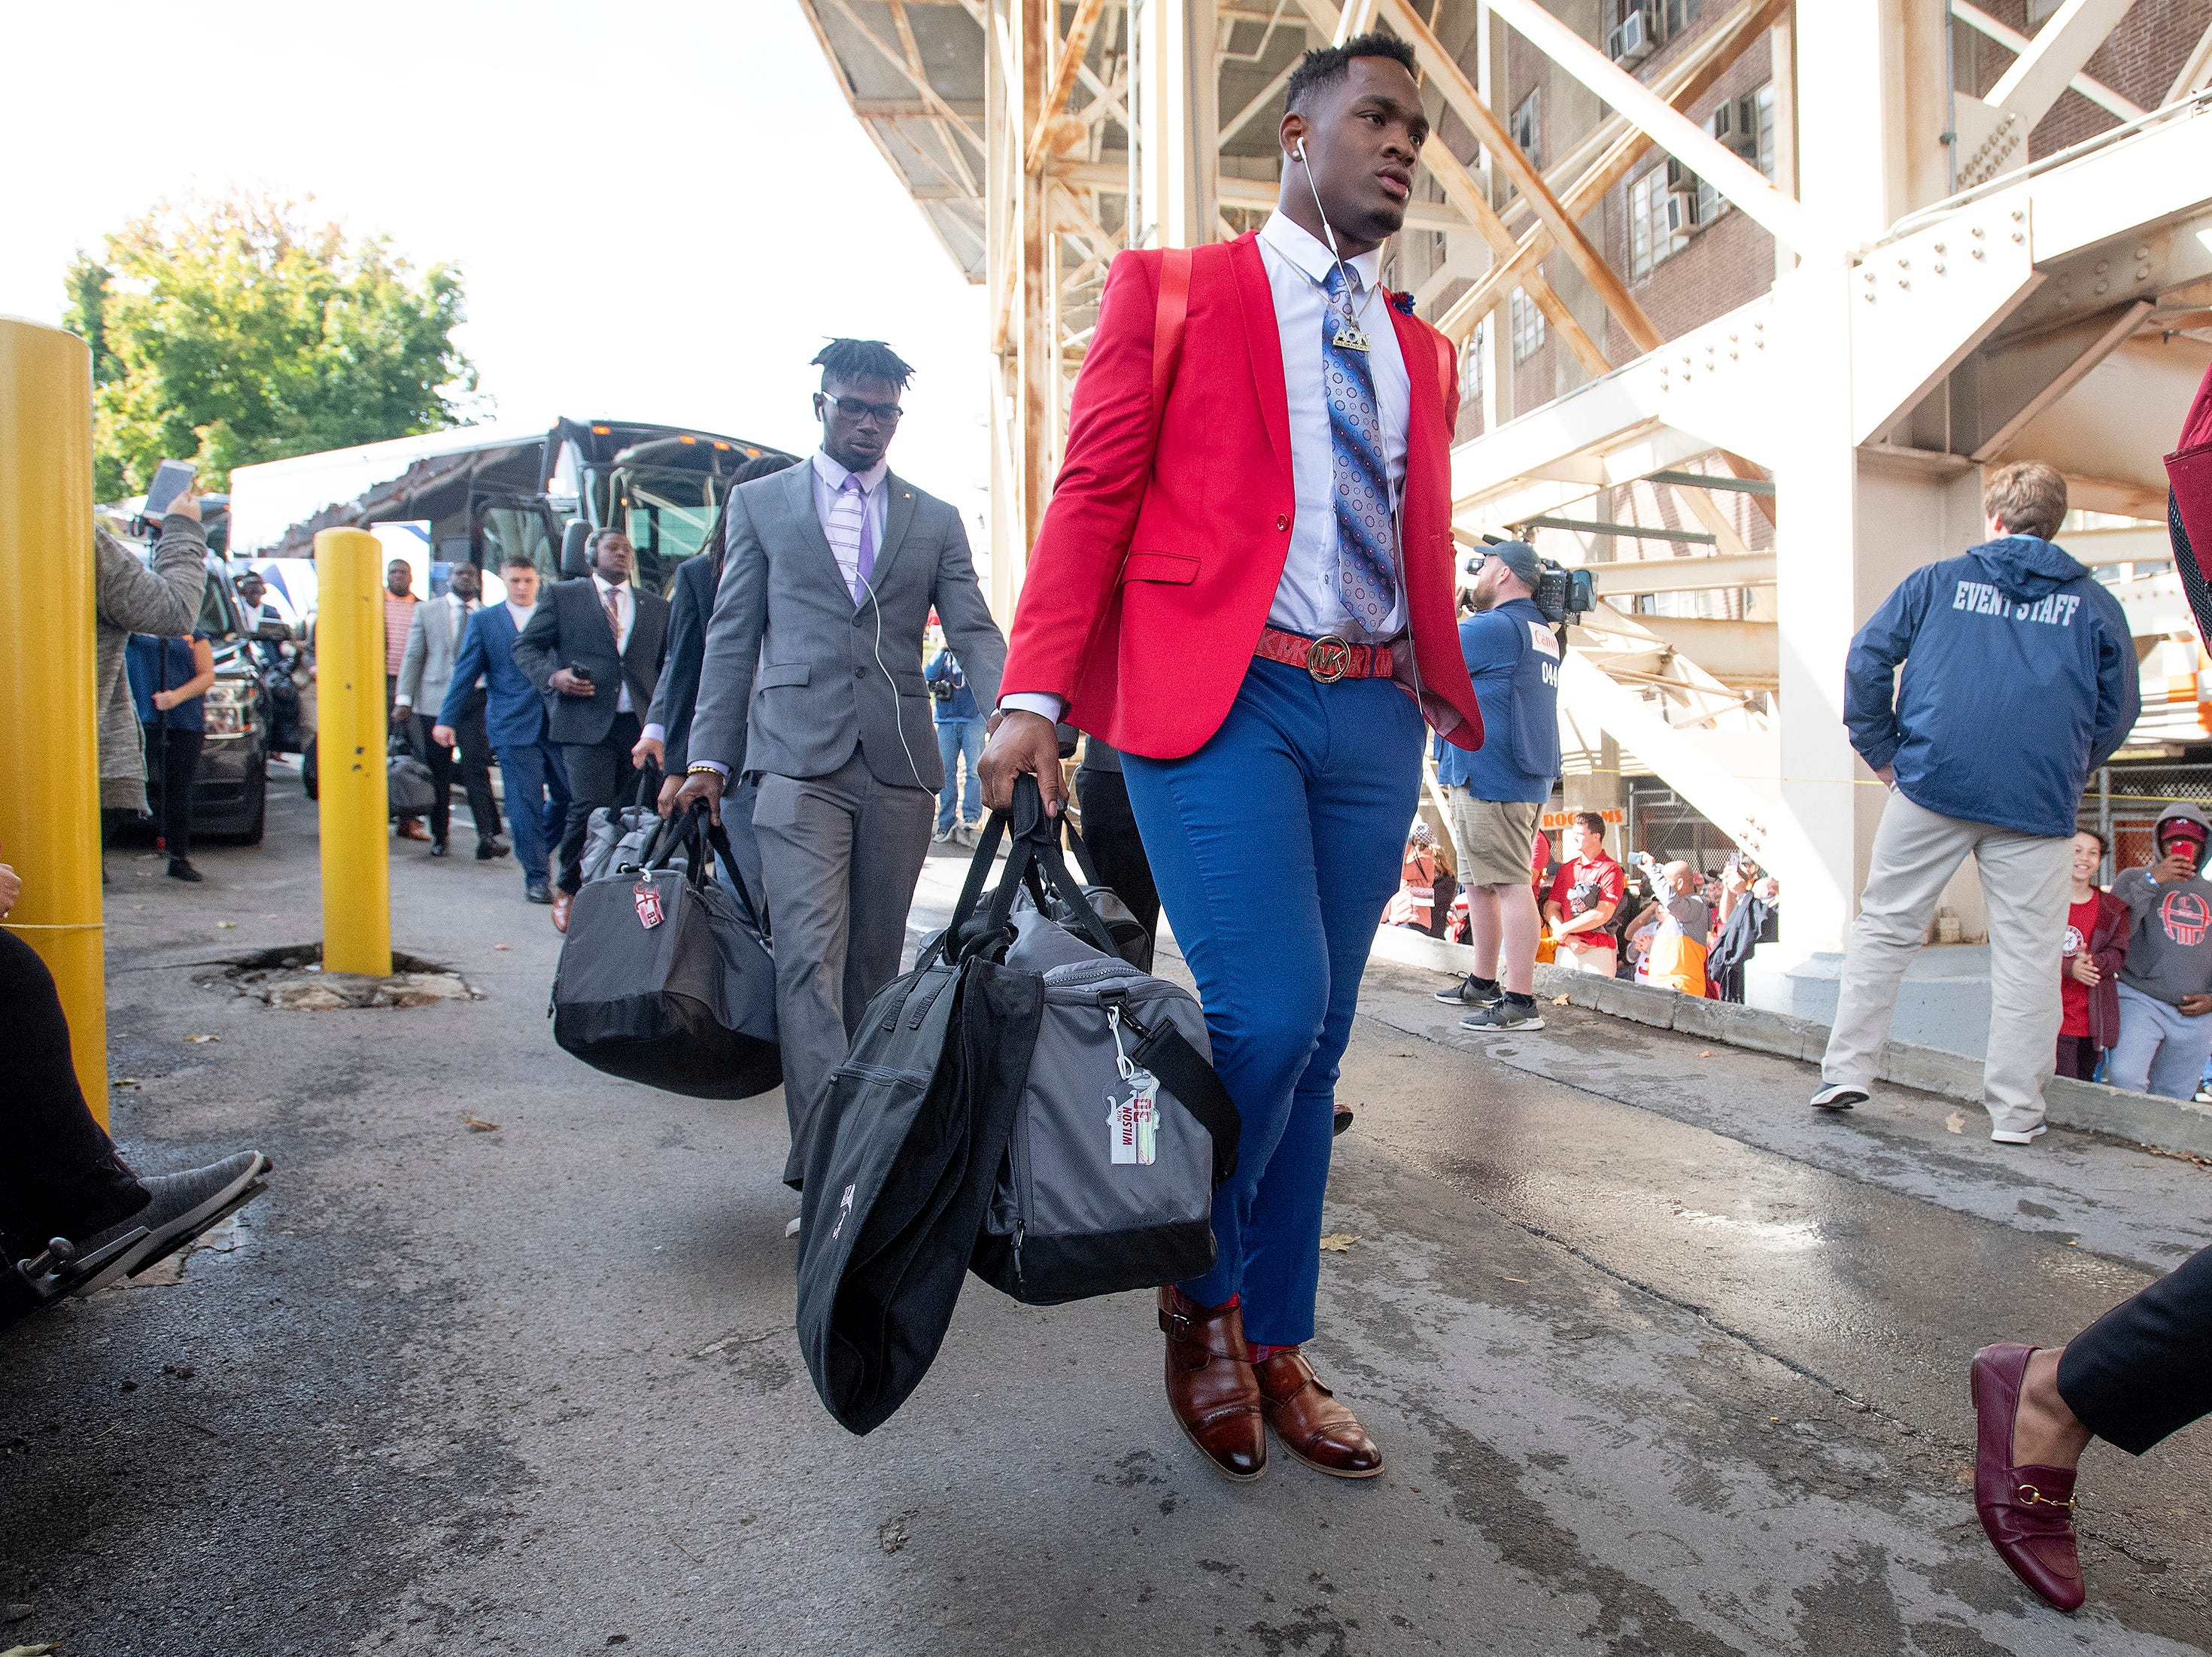 Alabama linebacker Mack Wilson (30) walks in as the team arrives for the Tennessee game at Neyland Stadium in Knoxville, Tn., on Saturday October 20, 2018.